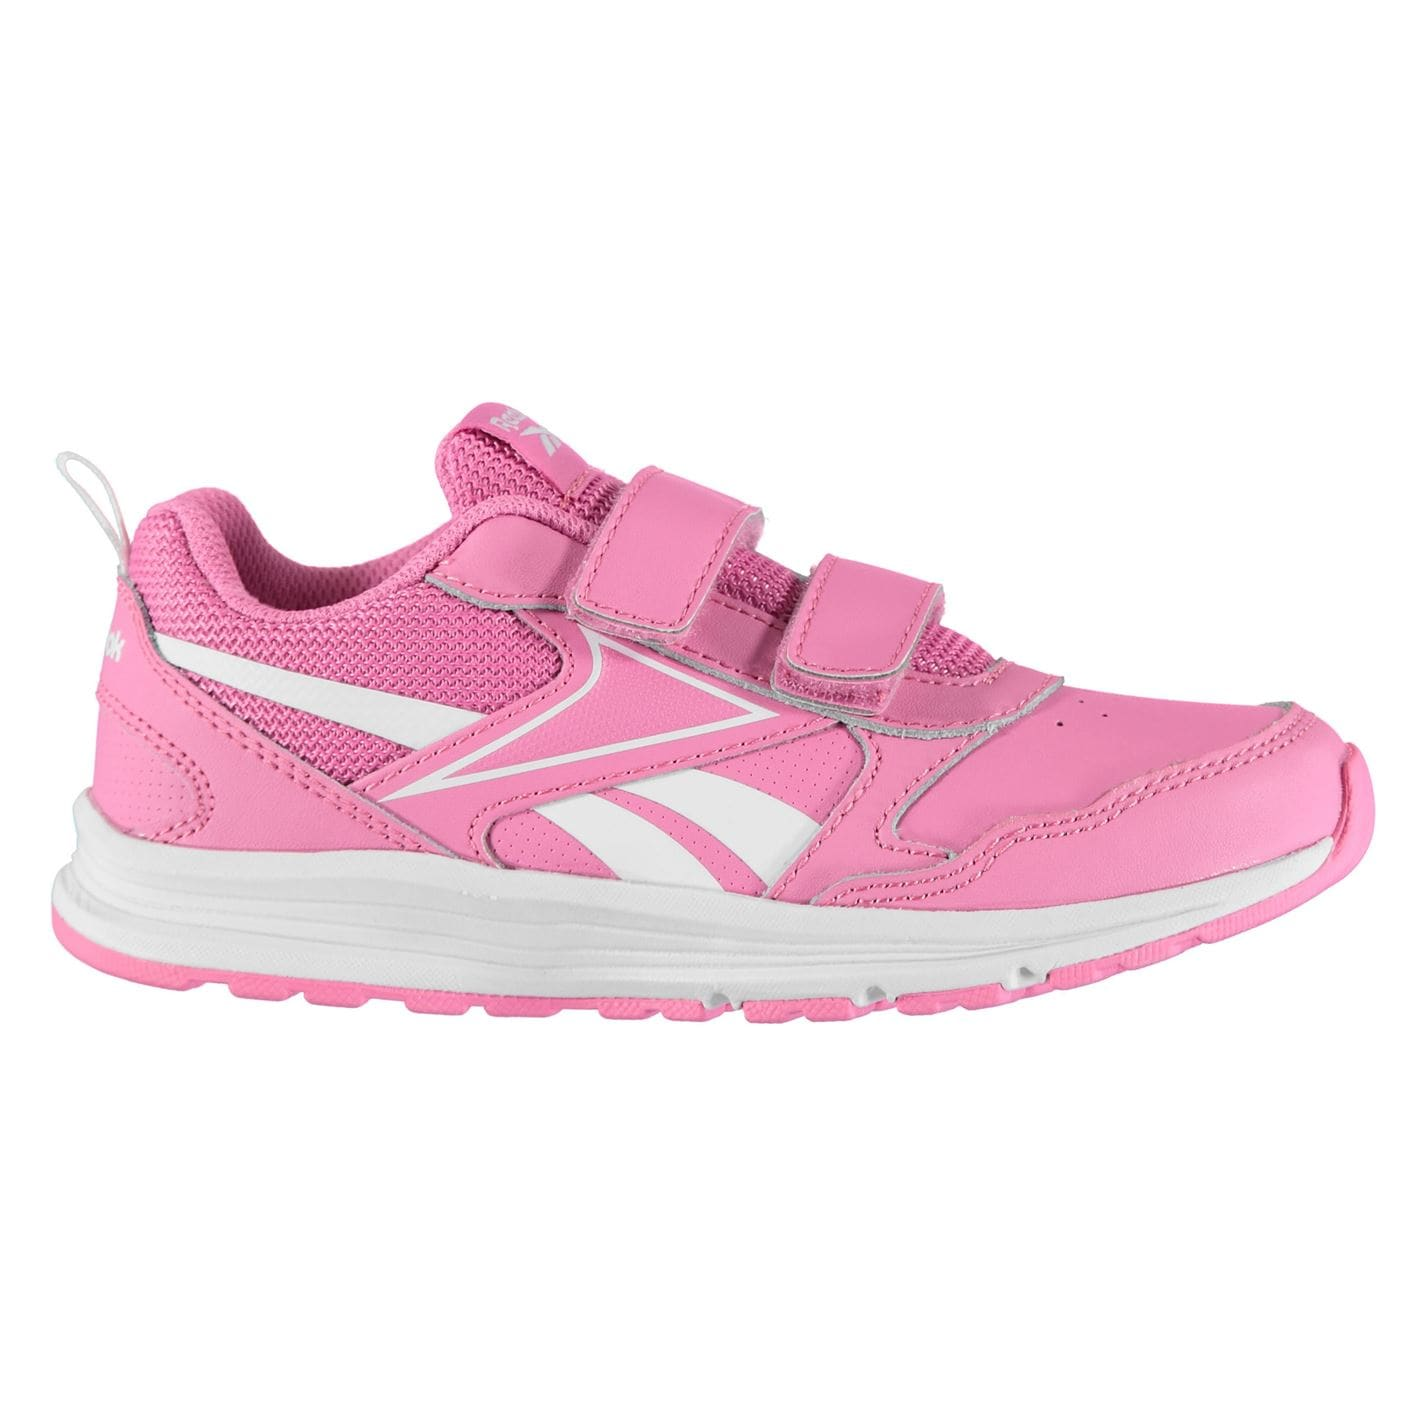 Reebok Almotio 5.0 Child Girls Trainers Pink/White